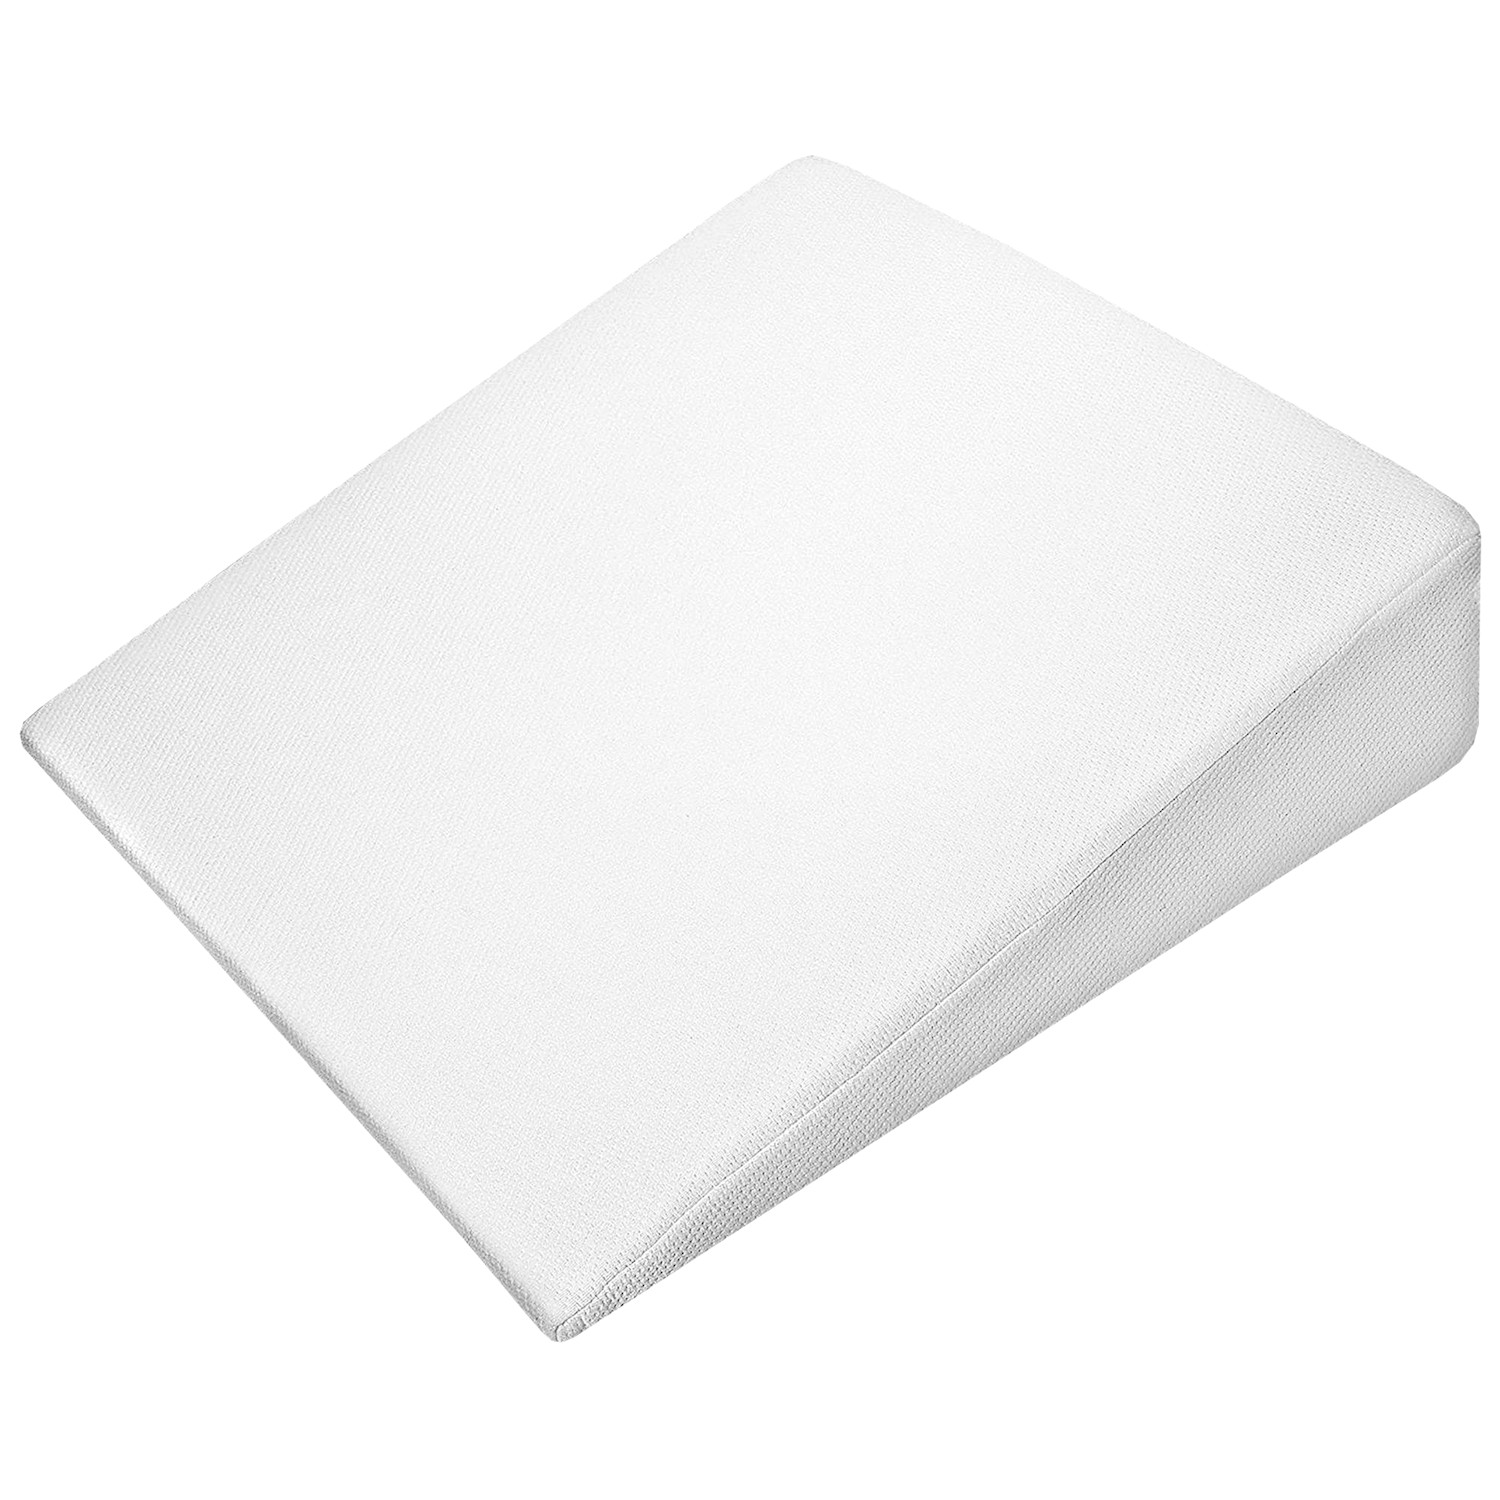 Support Plus Bed Wedge Pillow Premium Hybrid Memory Foam